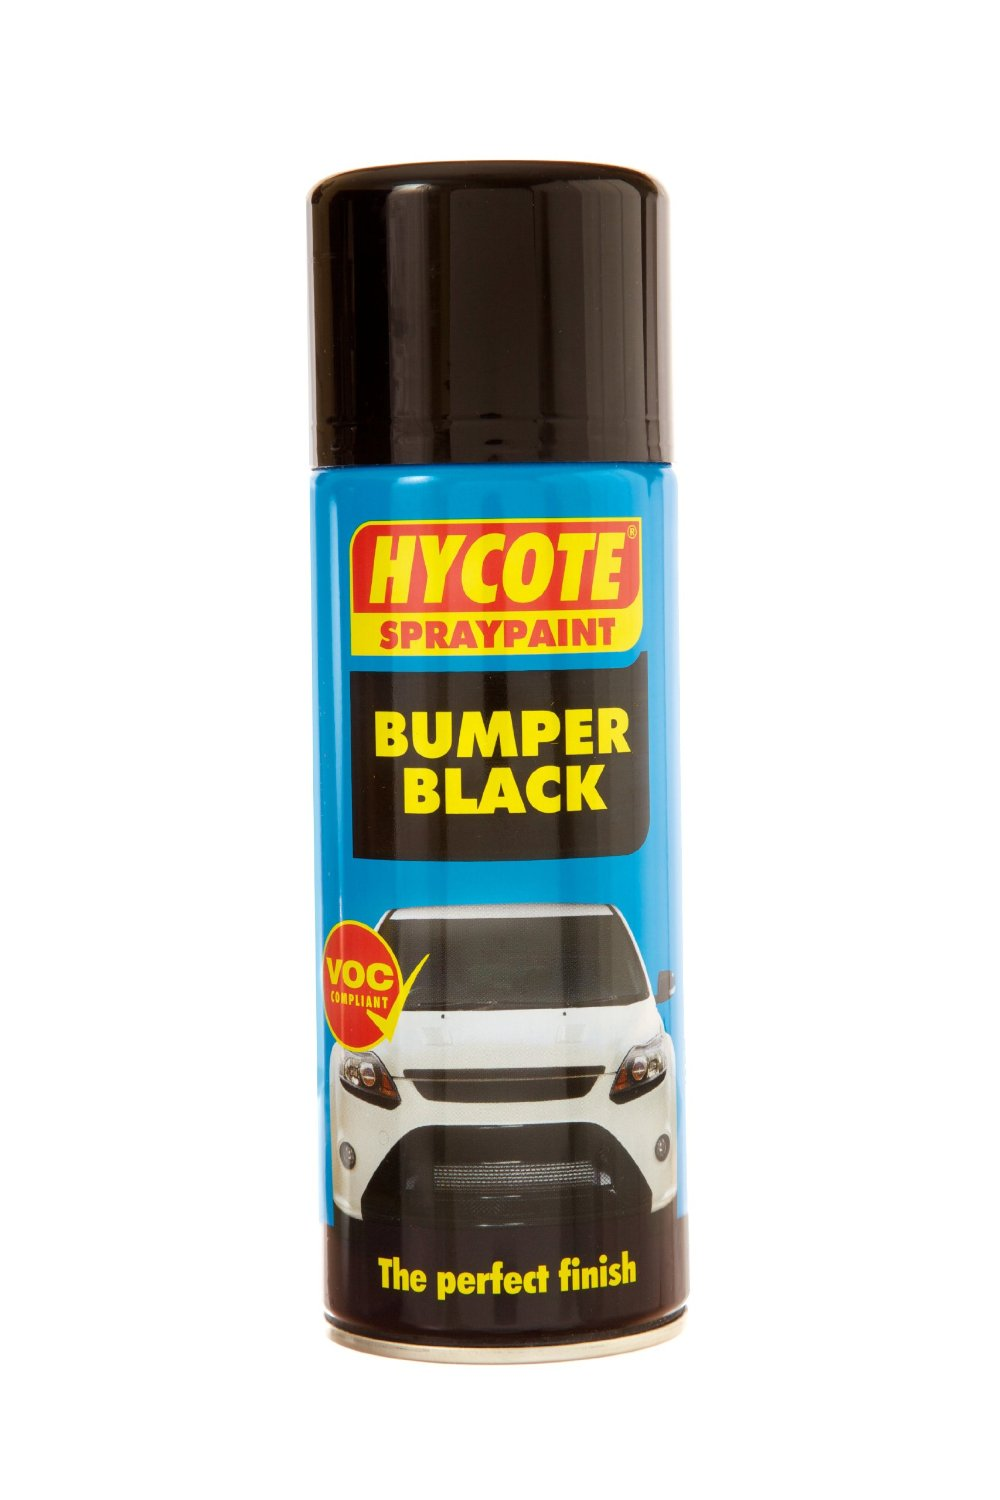 hycote bumper spray paint aerosol 400ml black garage. Black Bedroom Furniture Sets. Home Design Ideas